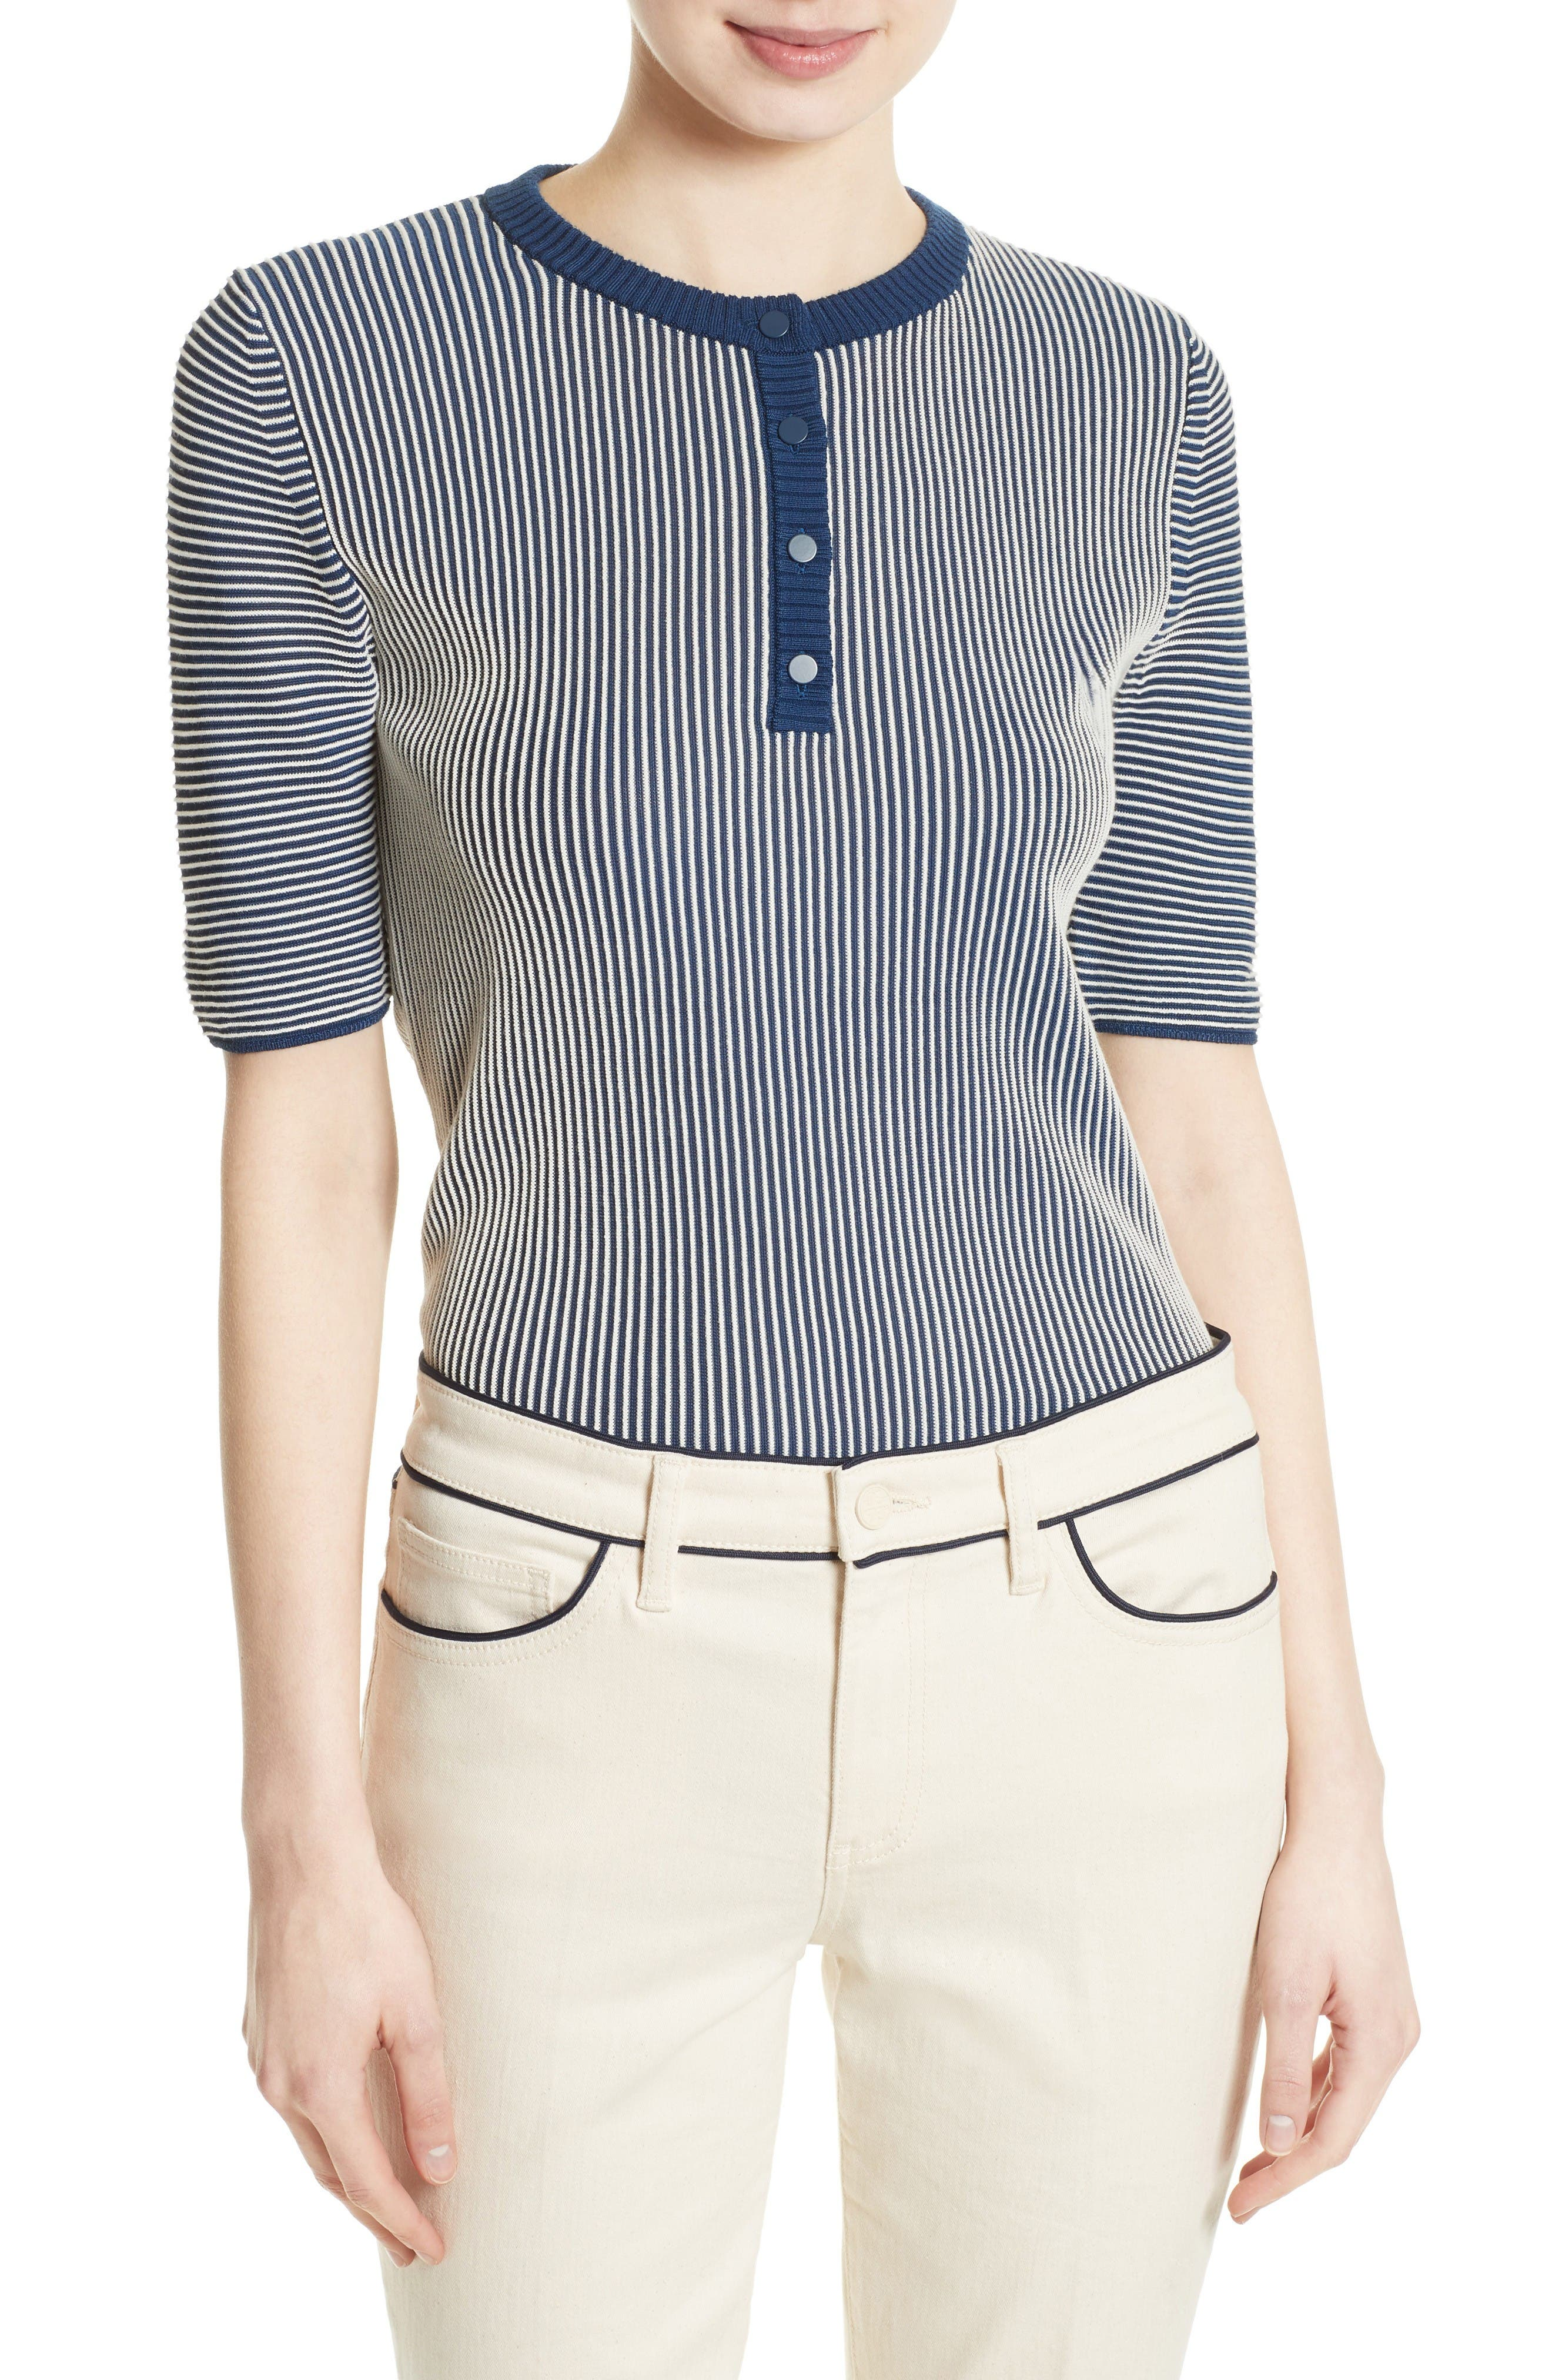 Tory Burch Kara Stripe Sweater